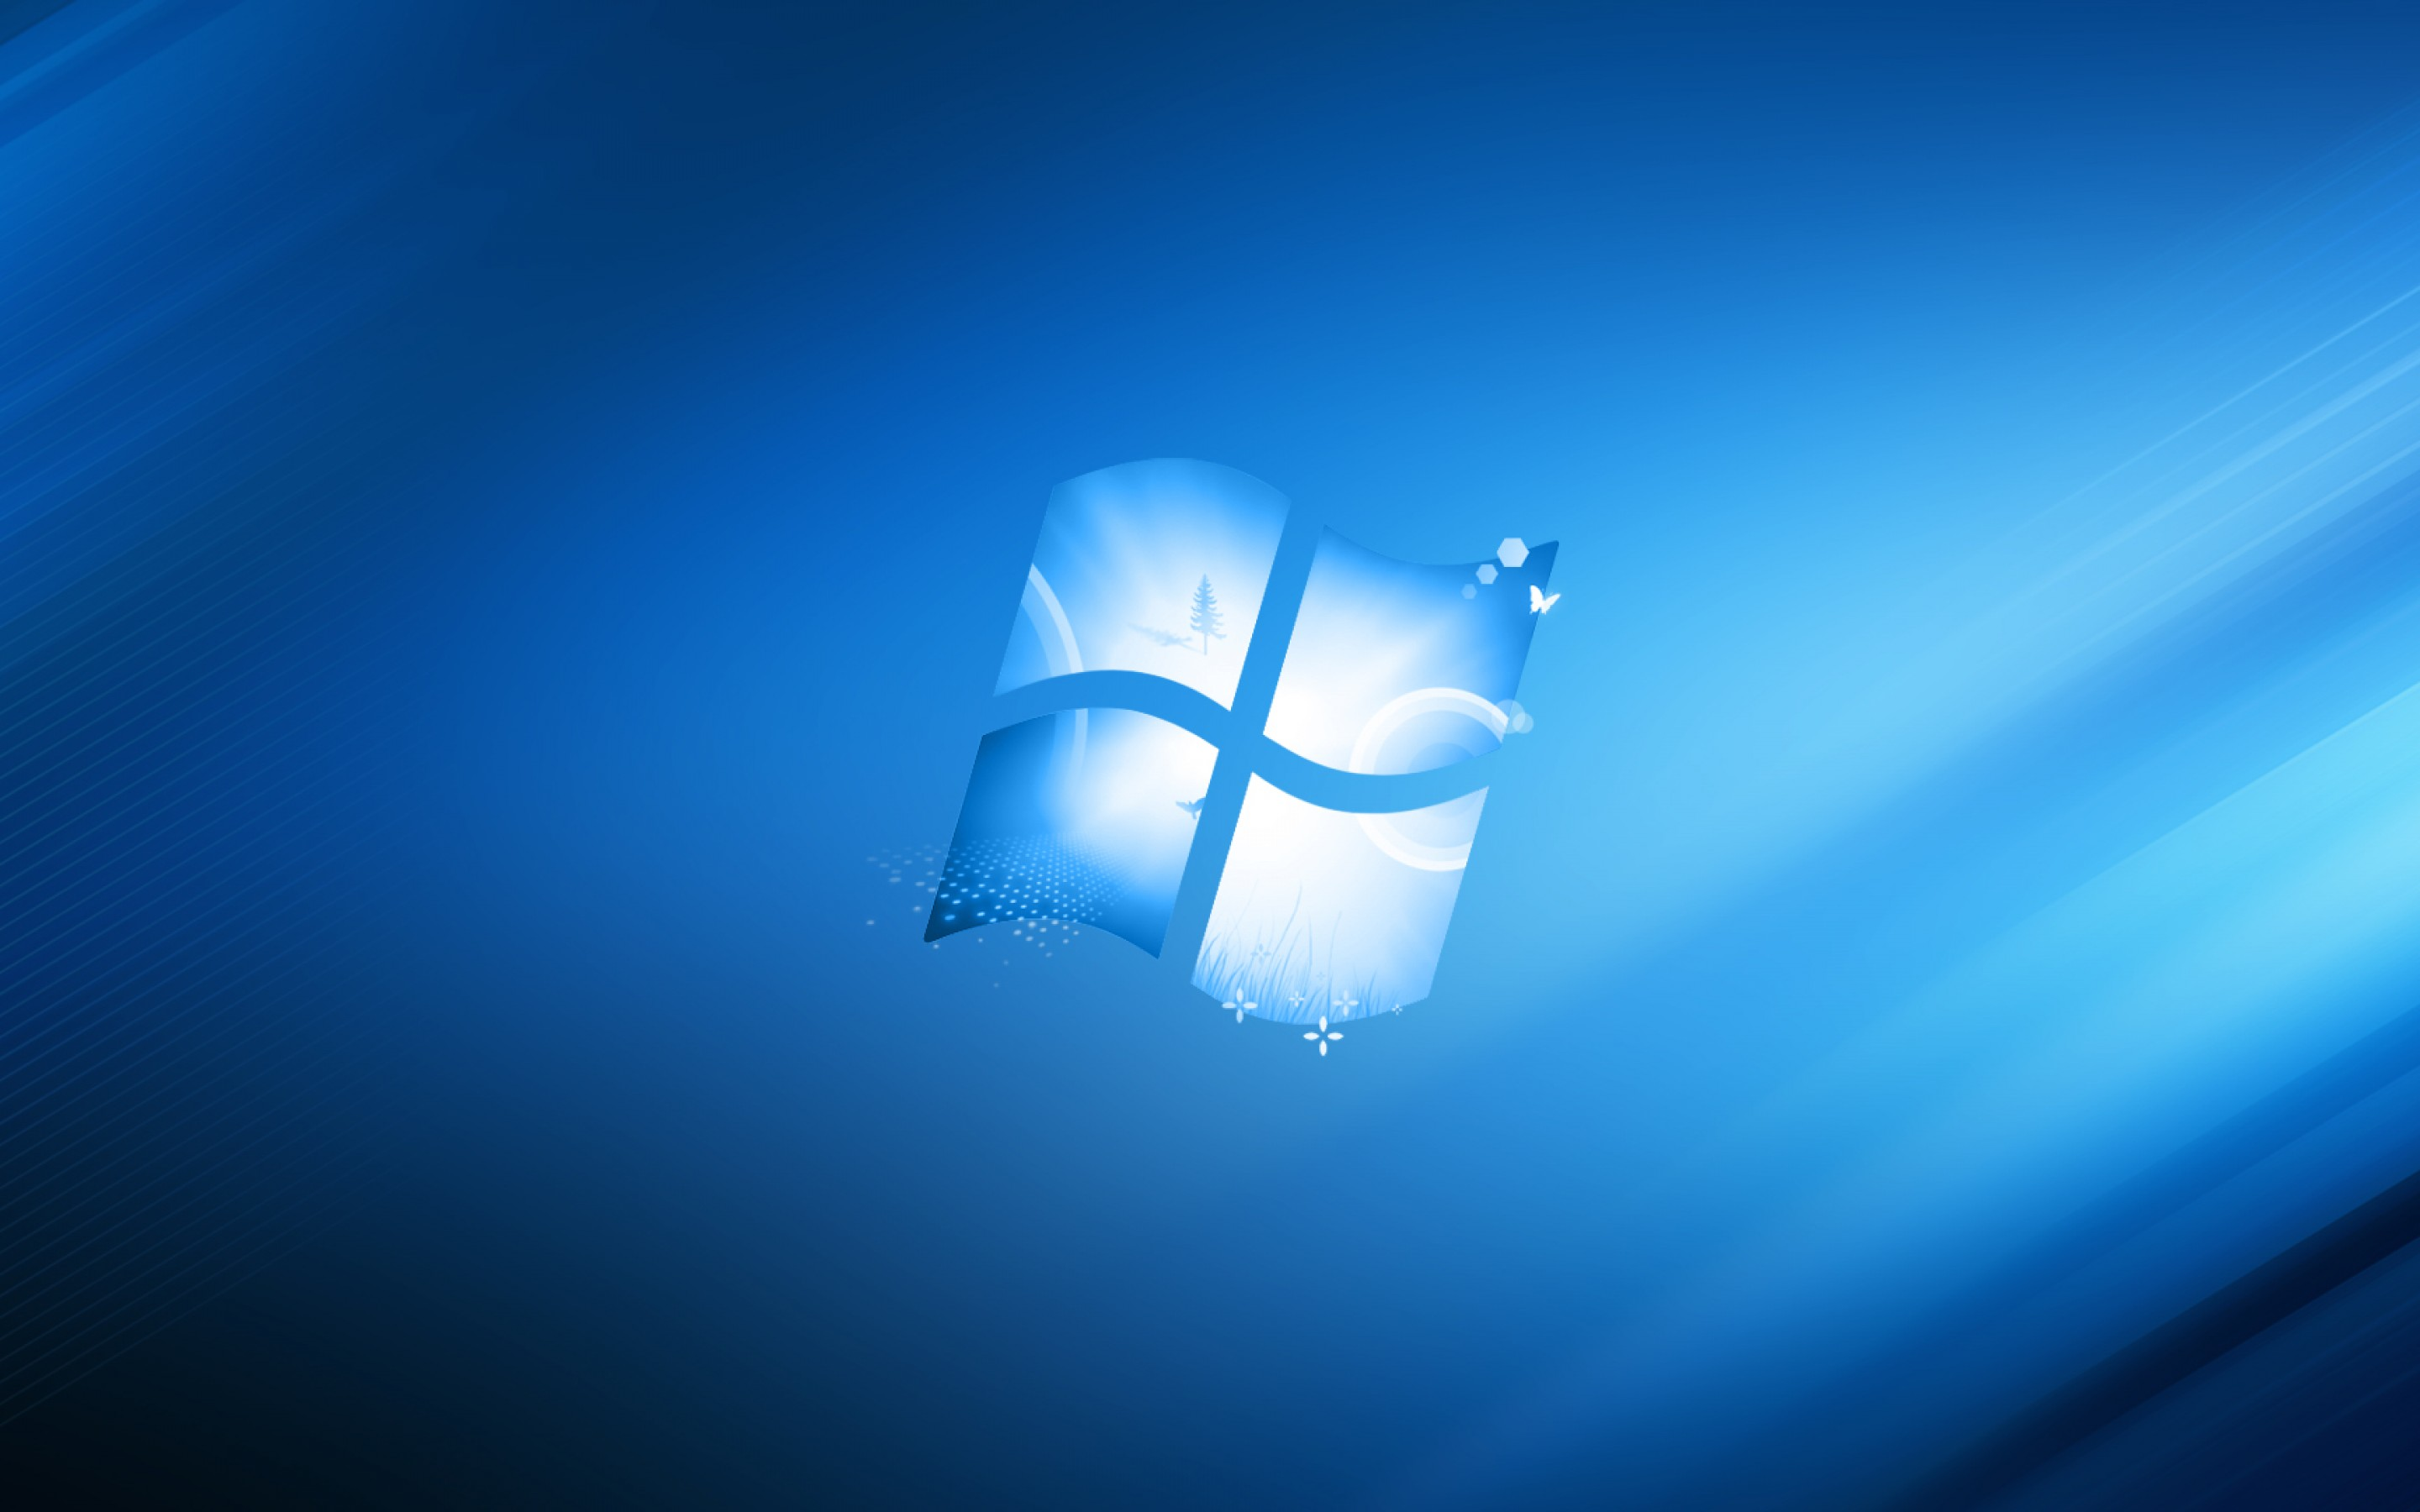 best windows 10 wallpaper   Tag Download HD Wallpaperhd wallpapers 2880x1800